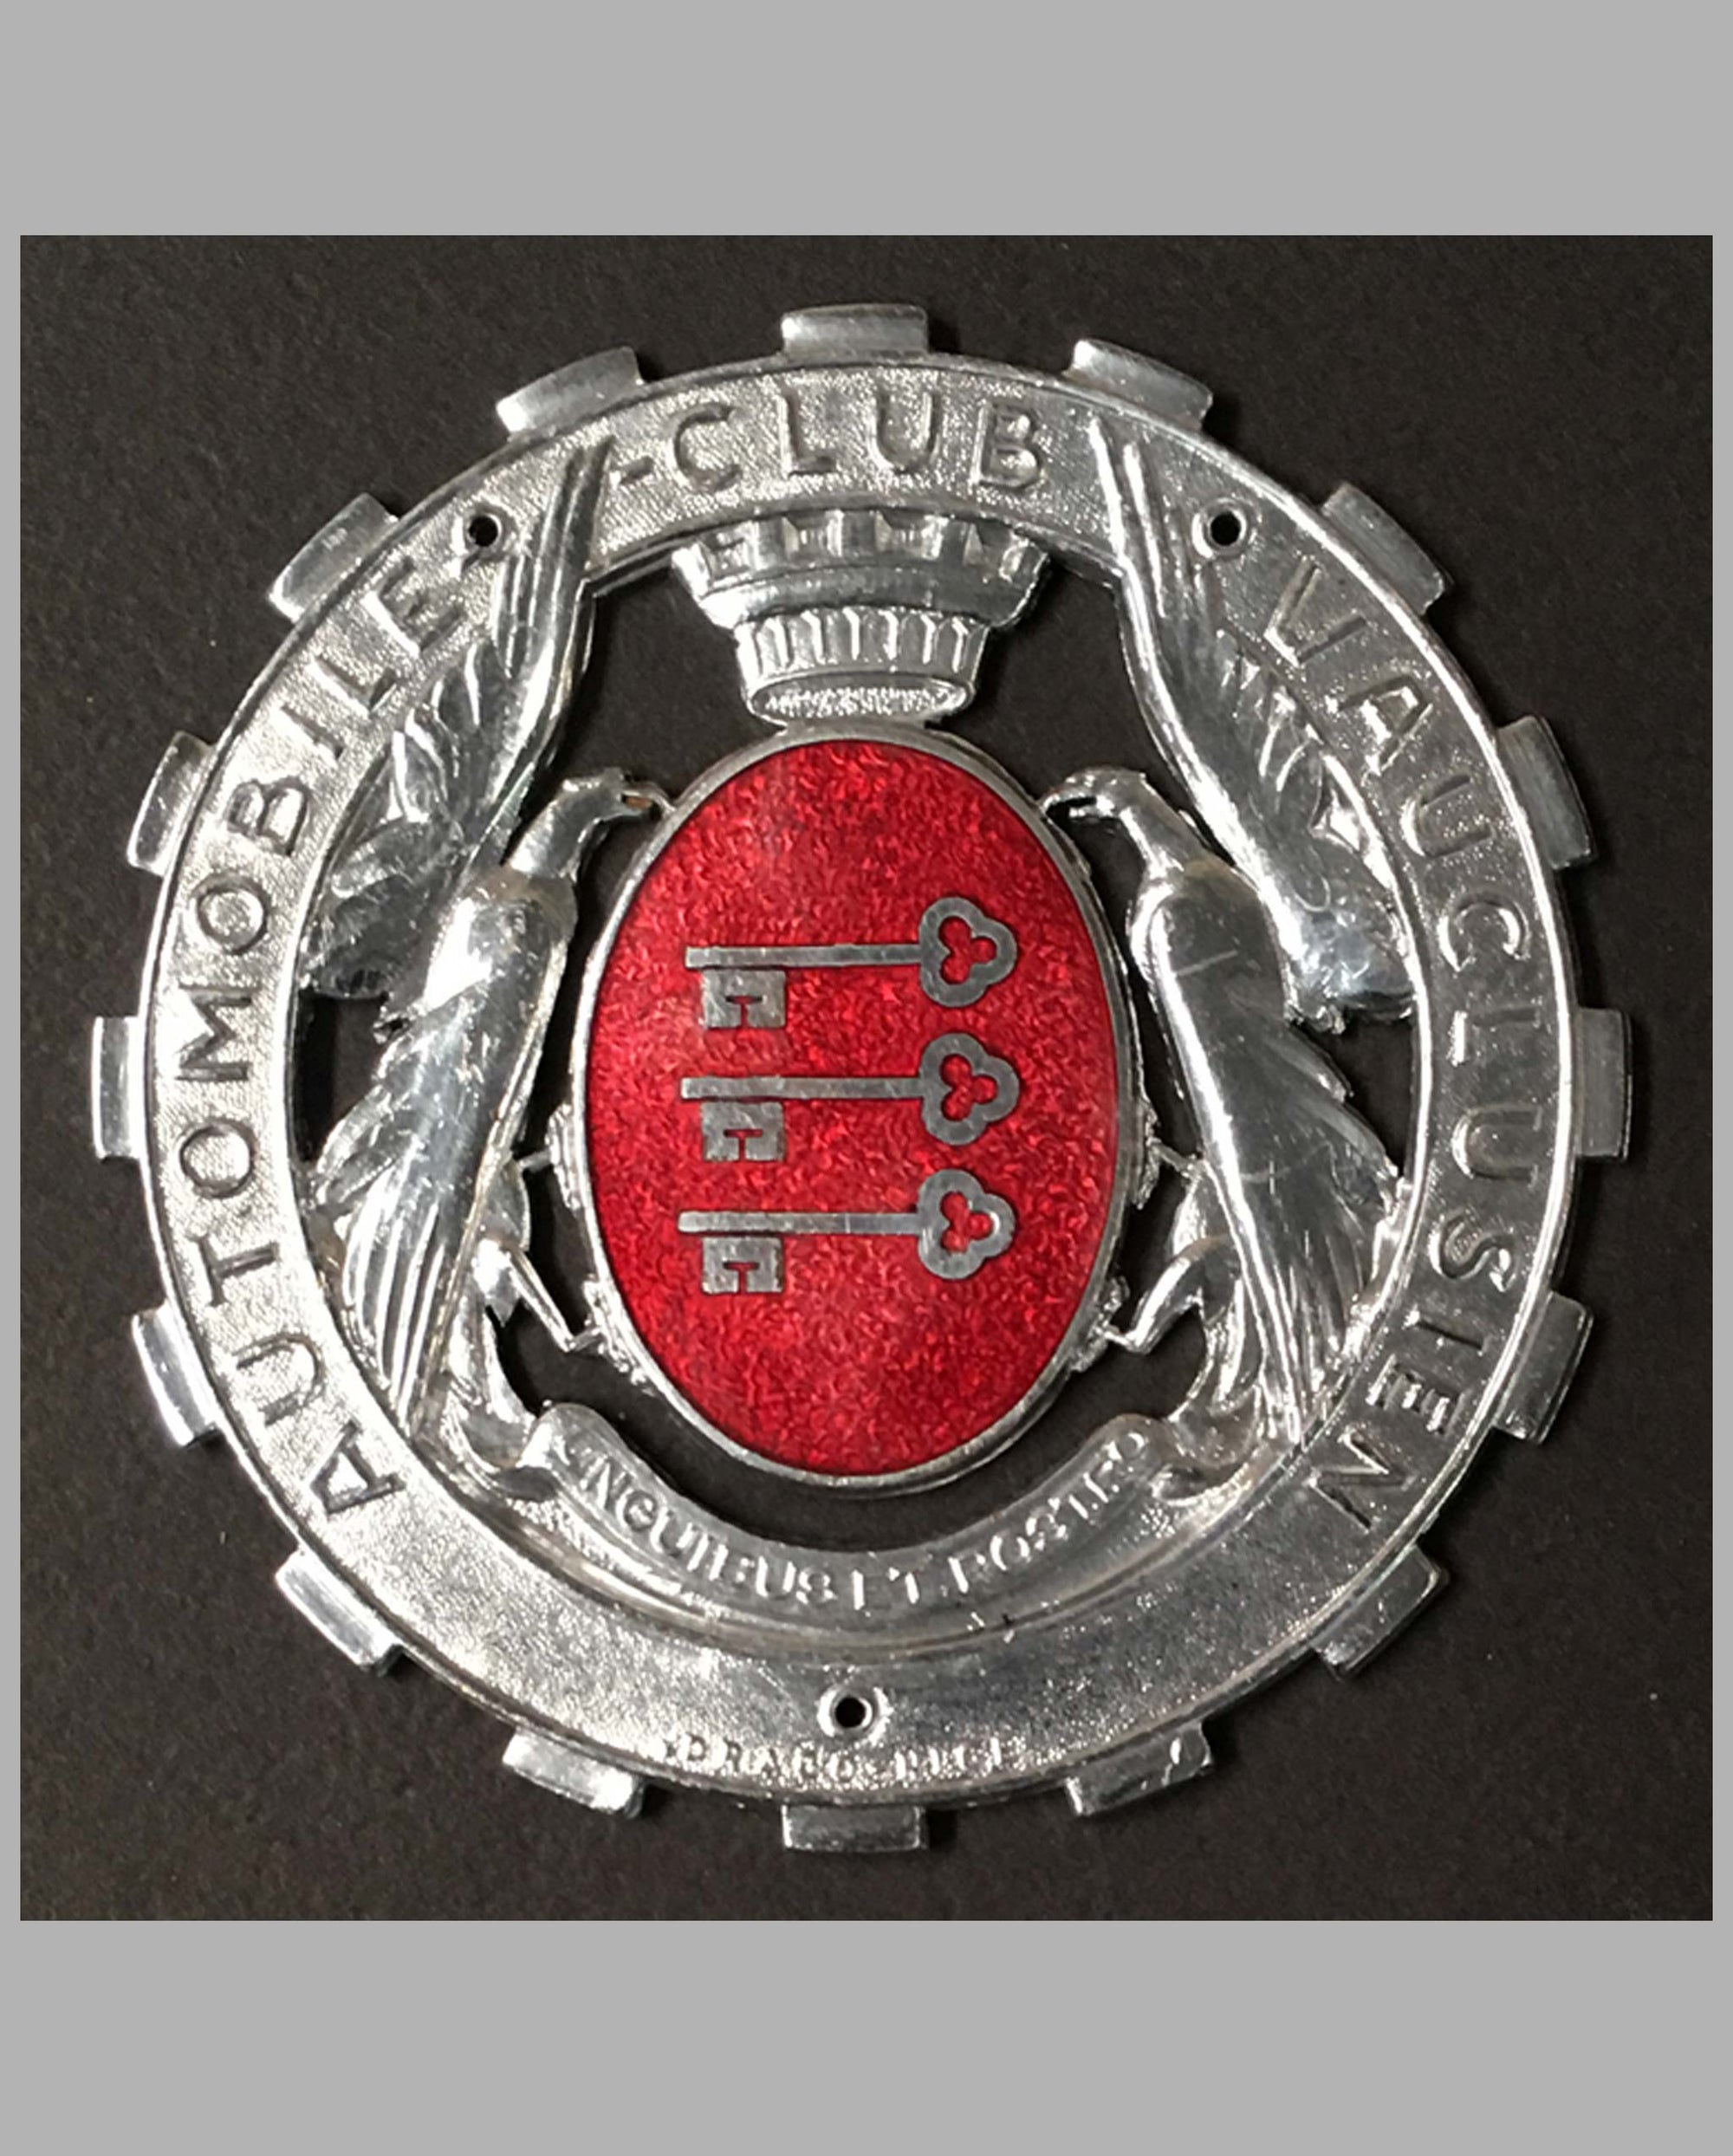 Automobile Club Vauclusien (South of France) grille badge